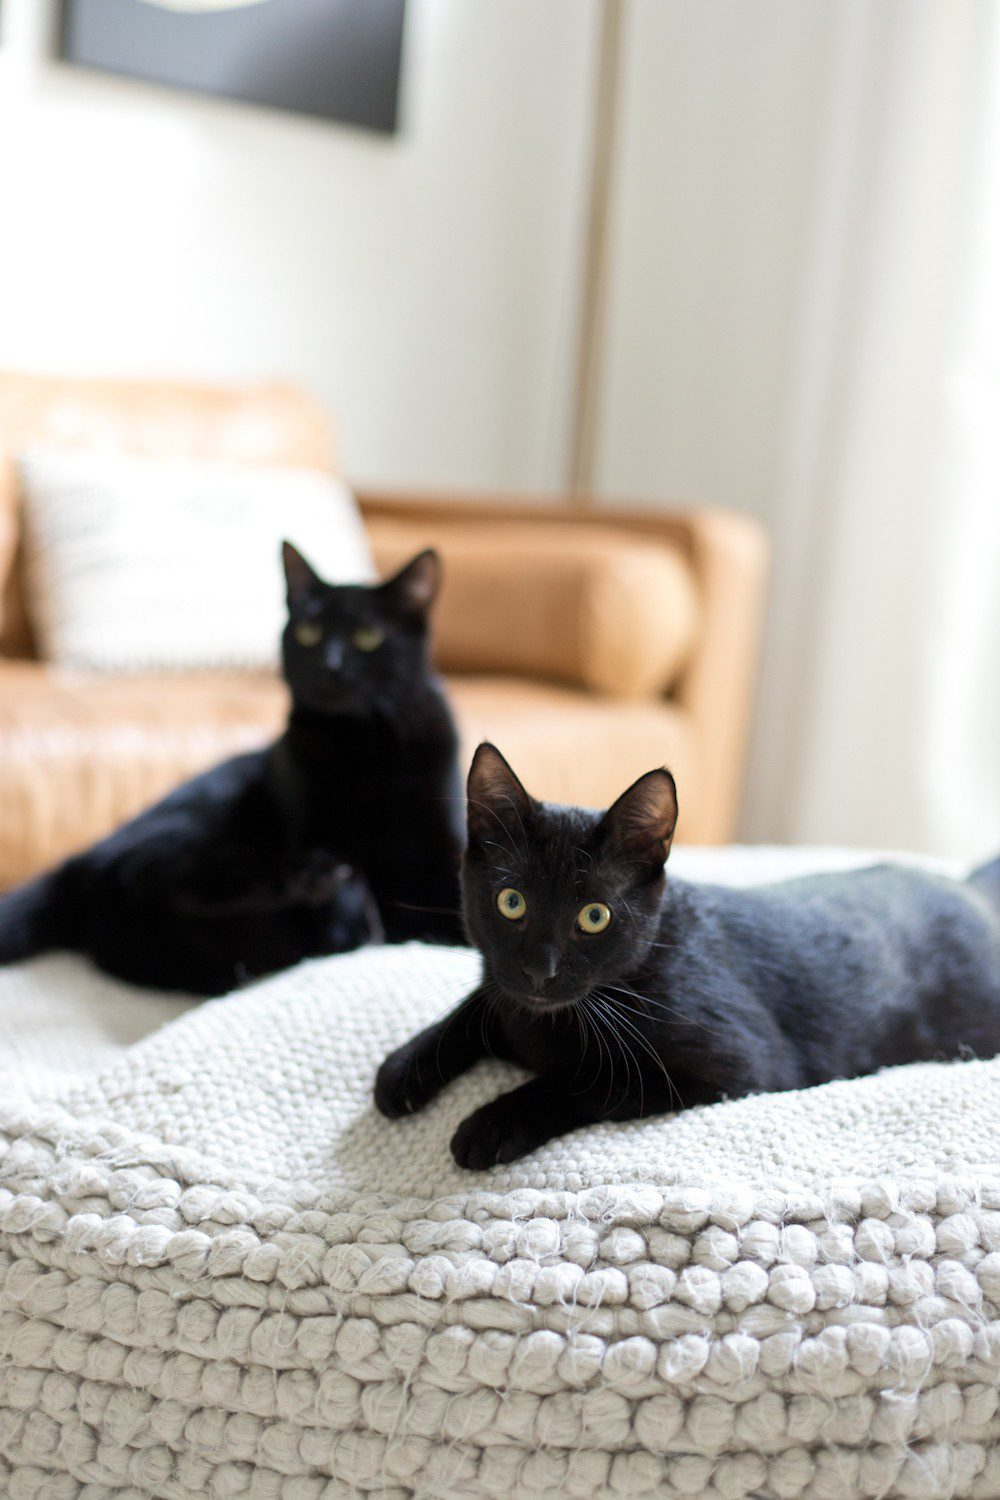 5 Essential Things for the Best Kitten Care! I hate cat litter! Here's why the Litter Robot is amazing and our new kitten care best friend. | How to Train Your Cat to Use the Litter Box by popular Tampa life and style blog, Fresh Mommy: image of two black cats lounging on an ottoman.